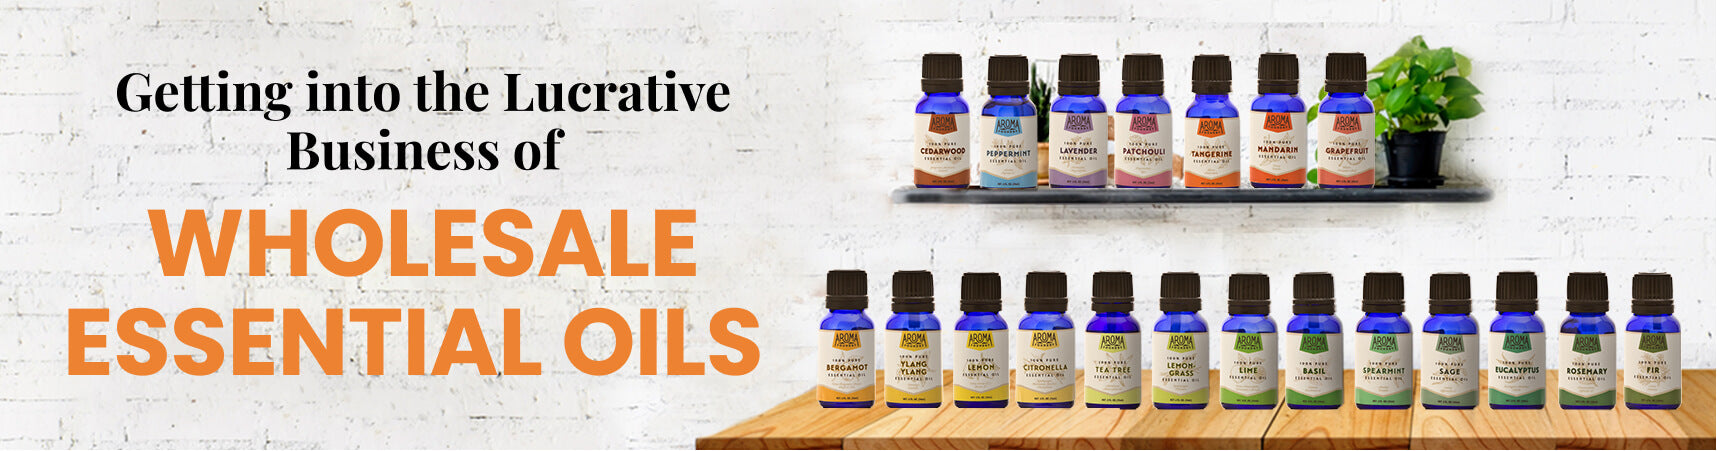 Getting into the Lucrative Business of Wholesale Essential Oils